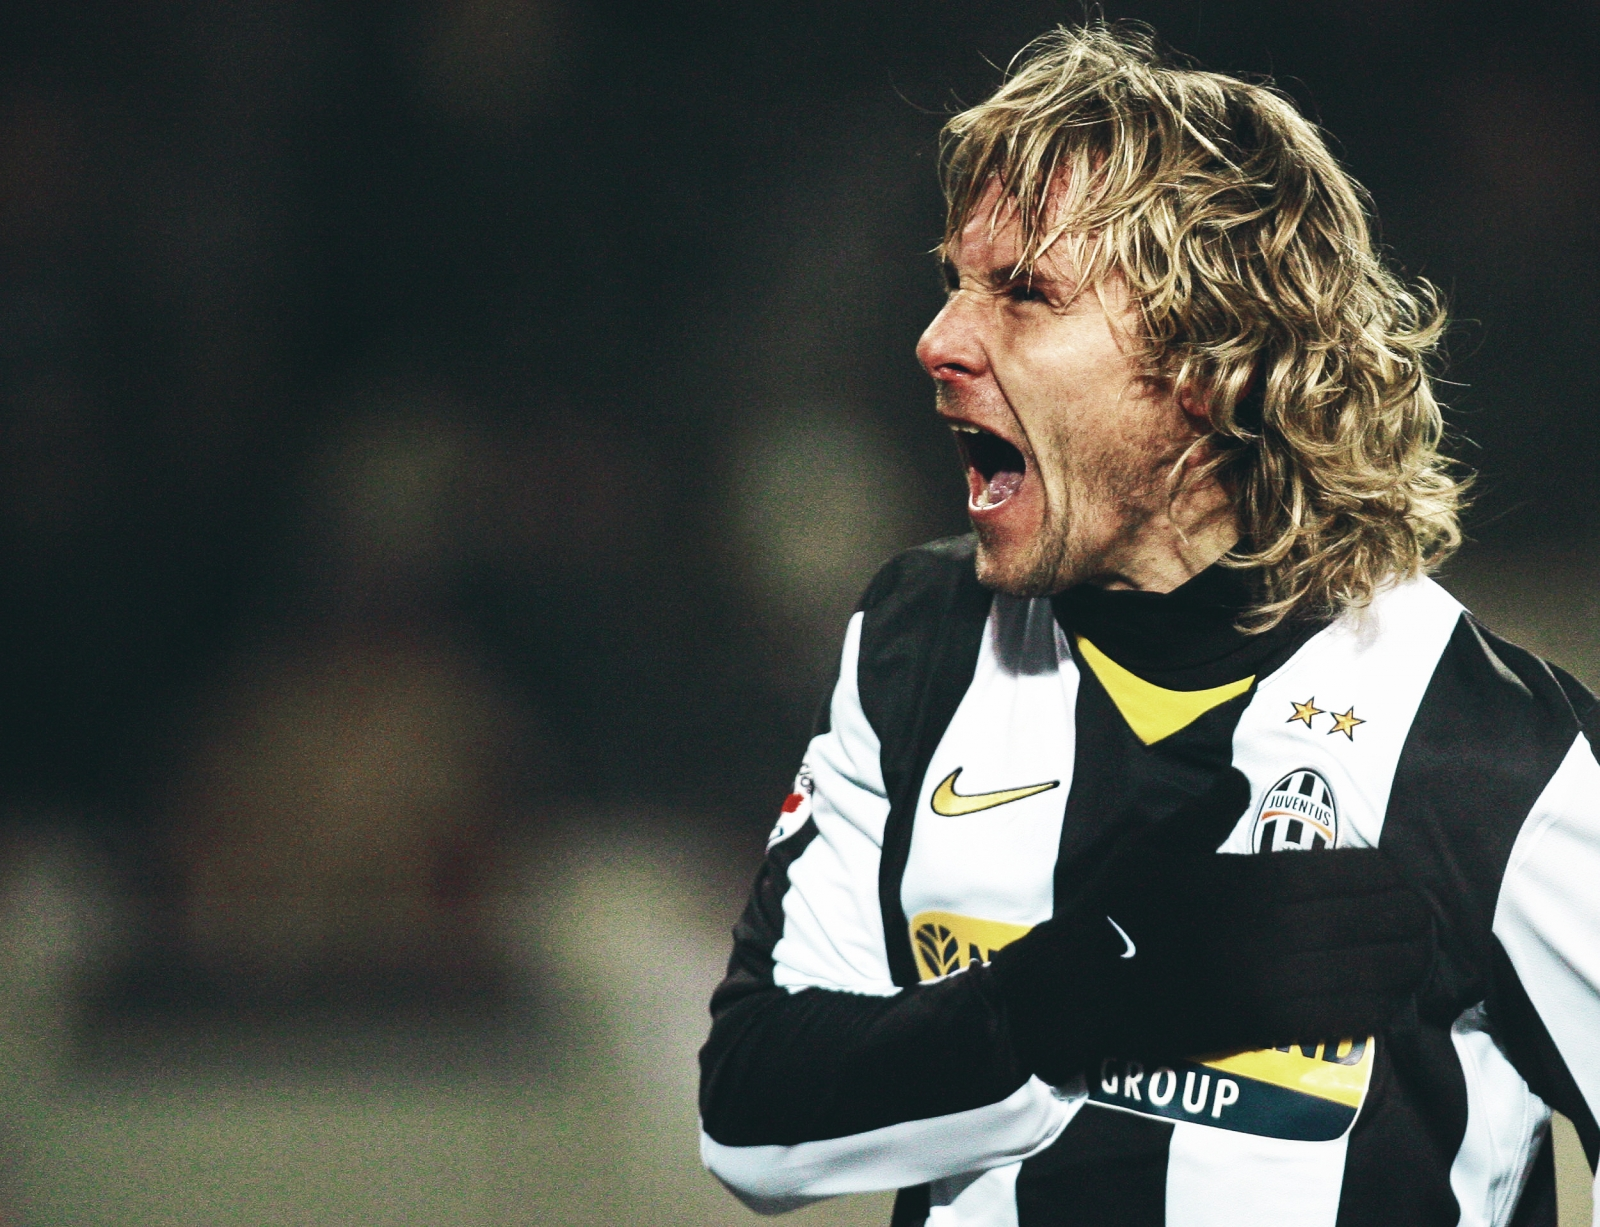 timeless design 50c88 11d2a In celebration of Pavel Nedvěd, the Czech Fury